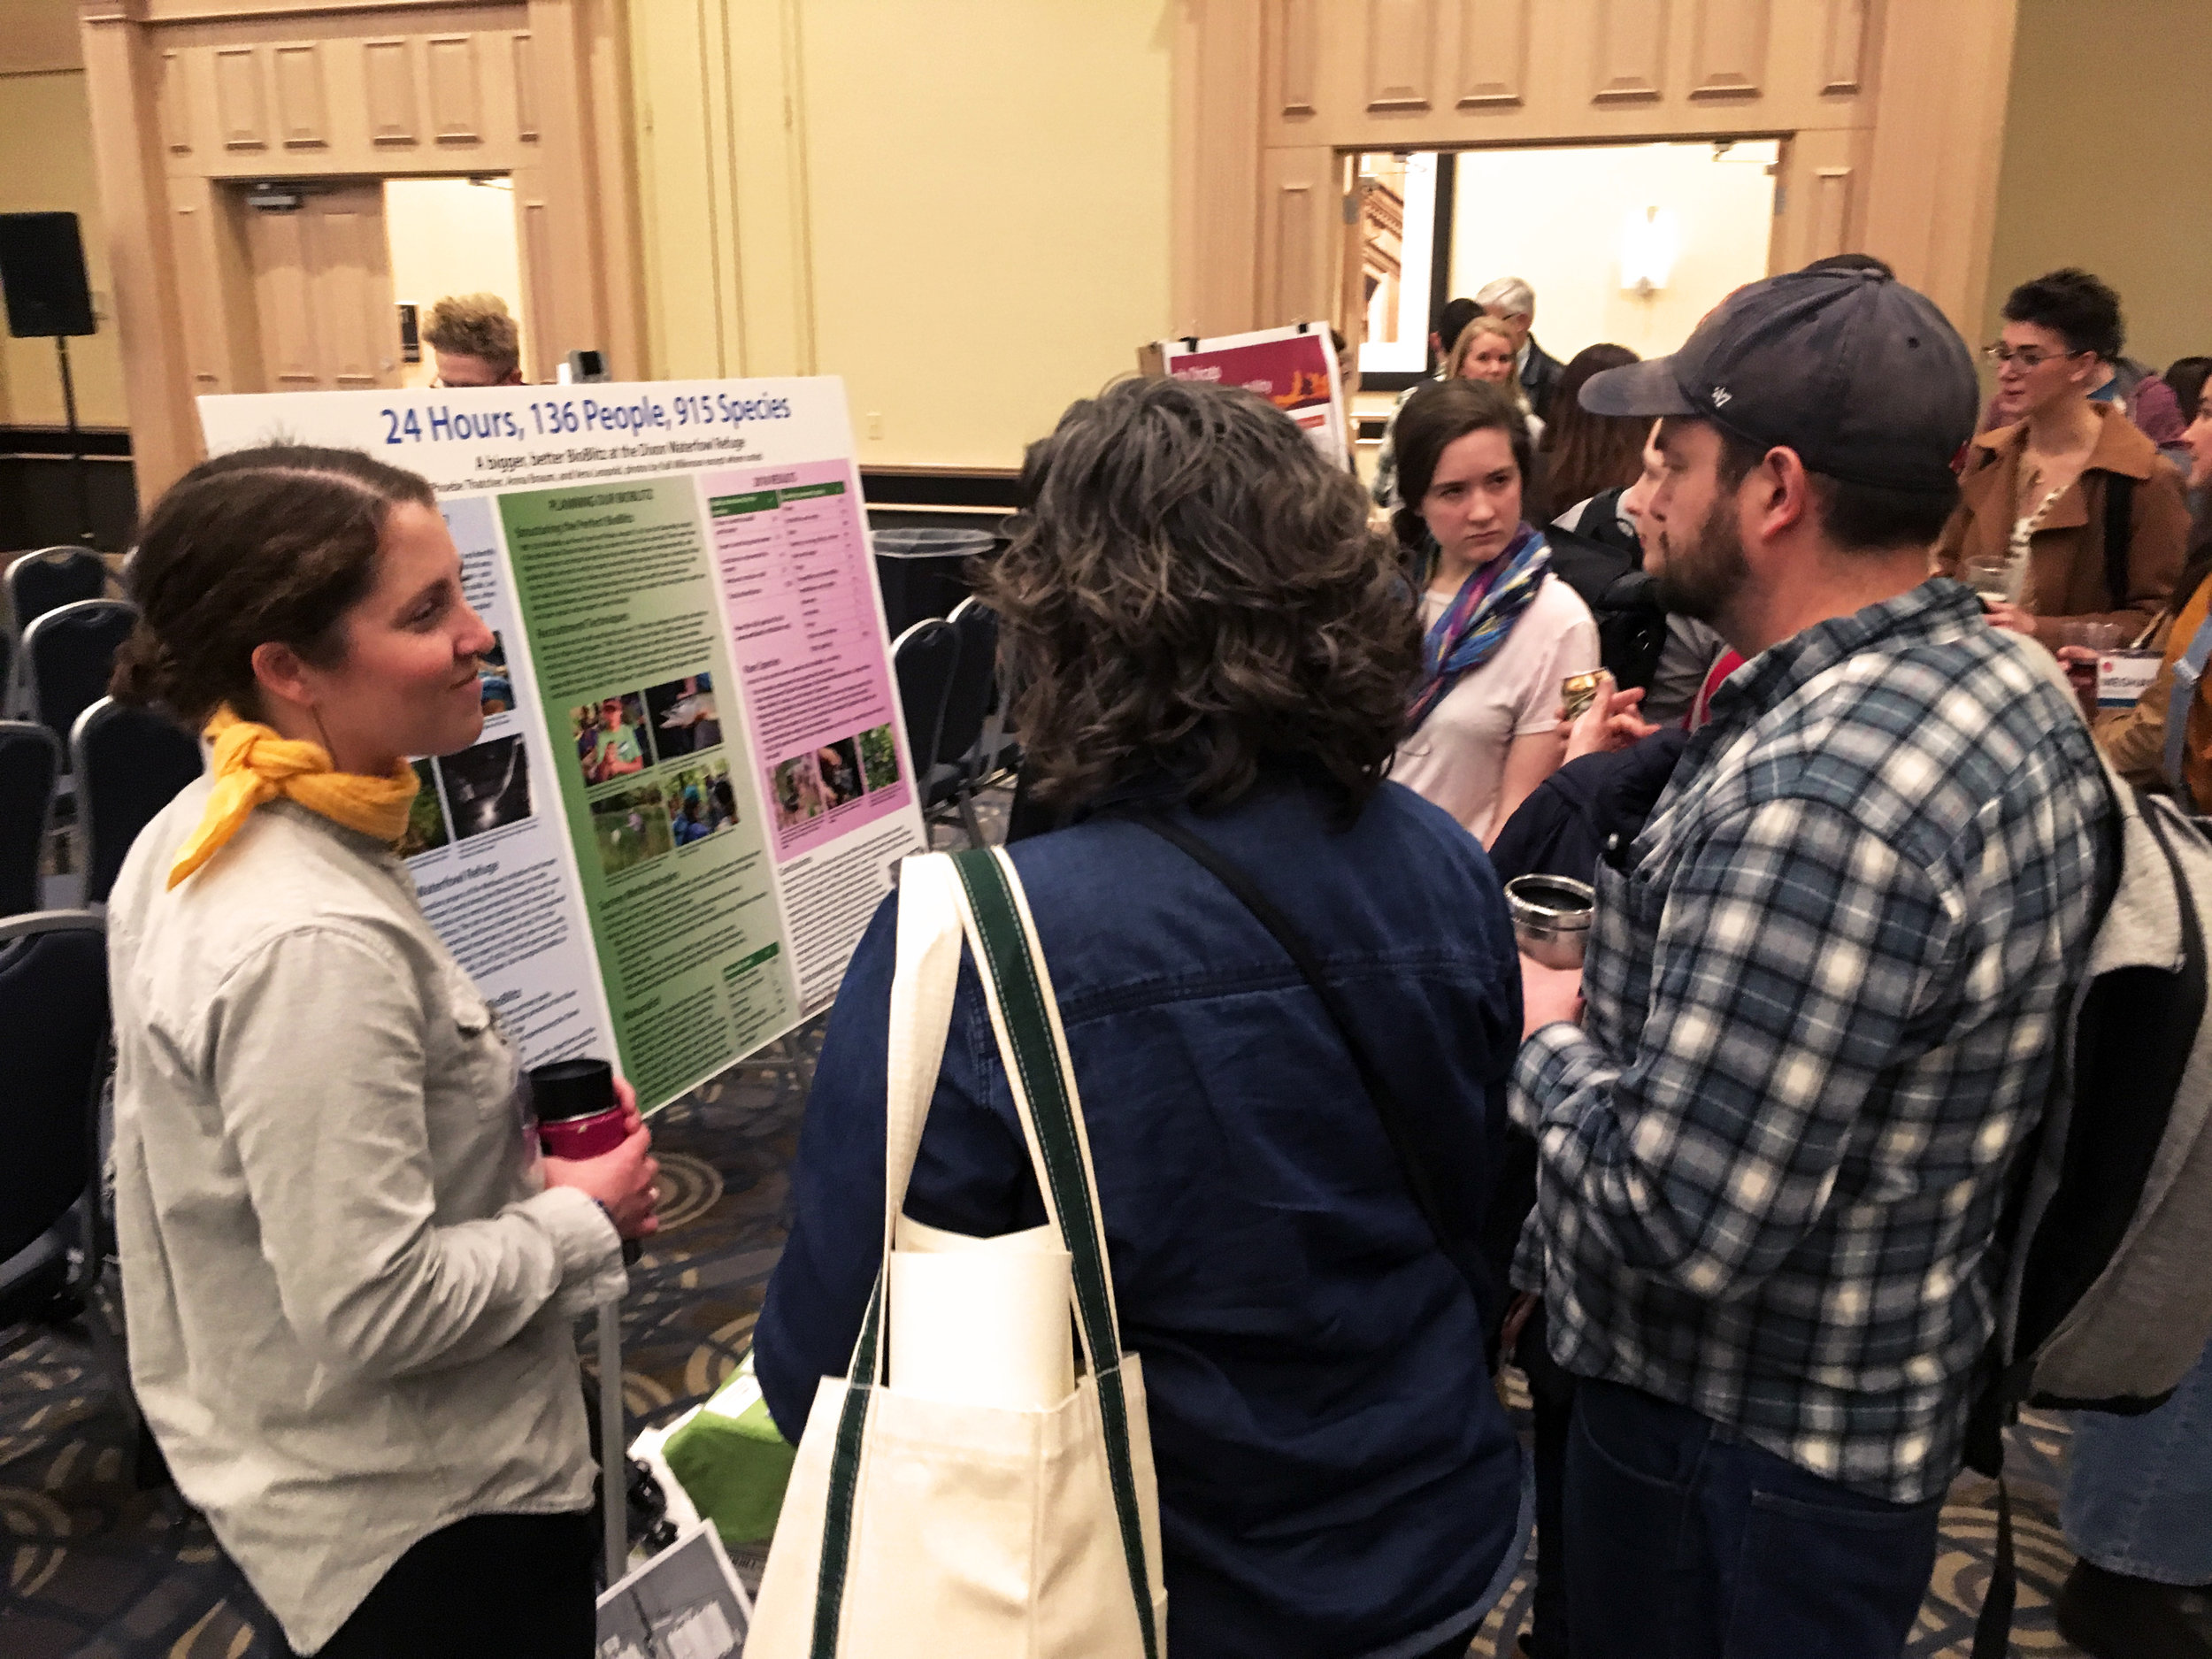 TWI Ecologist Anna Braum (left) and Development and Communications Assistant Phoebe Thatcher (in pink t-shirt) discussing the 2018 BioBlitz experience with Wild Things attendees. Photo by Vera Leopold/TWI.